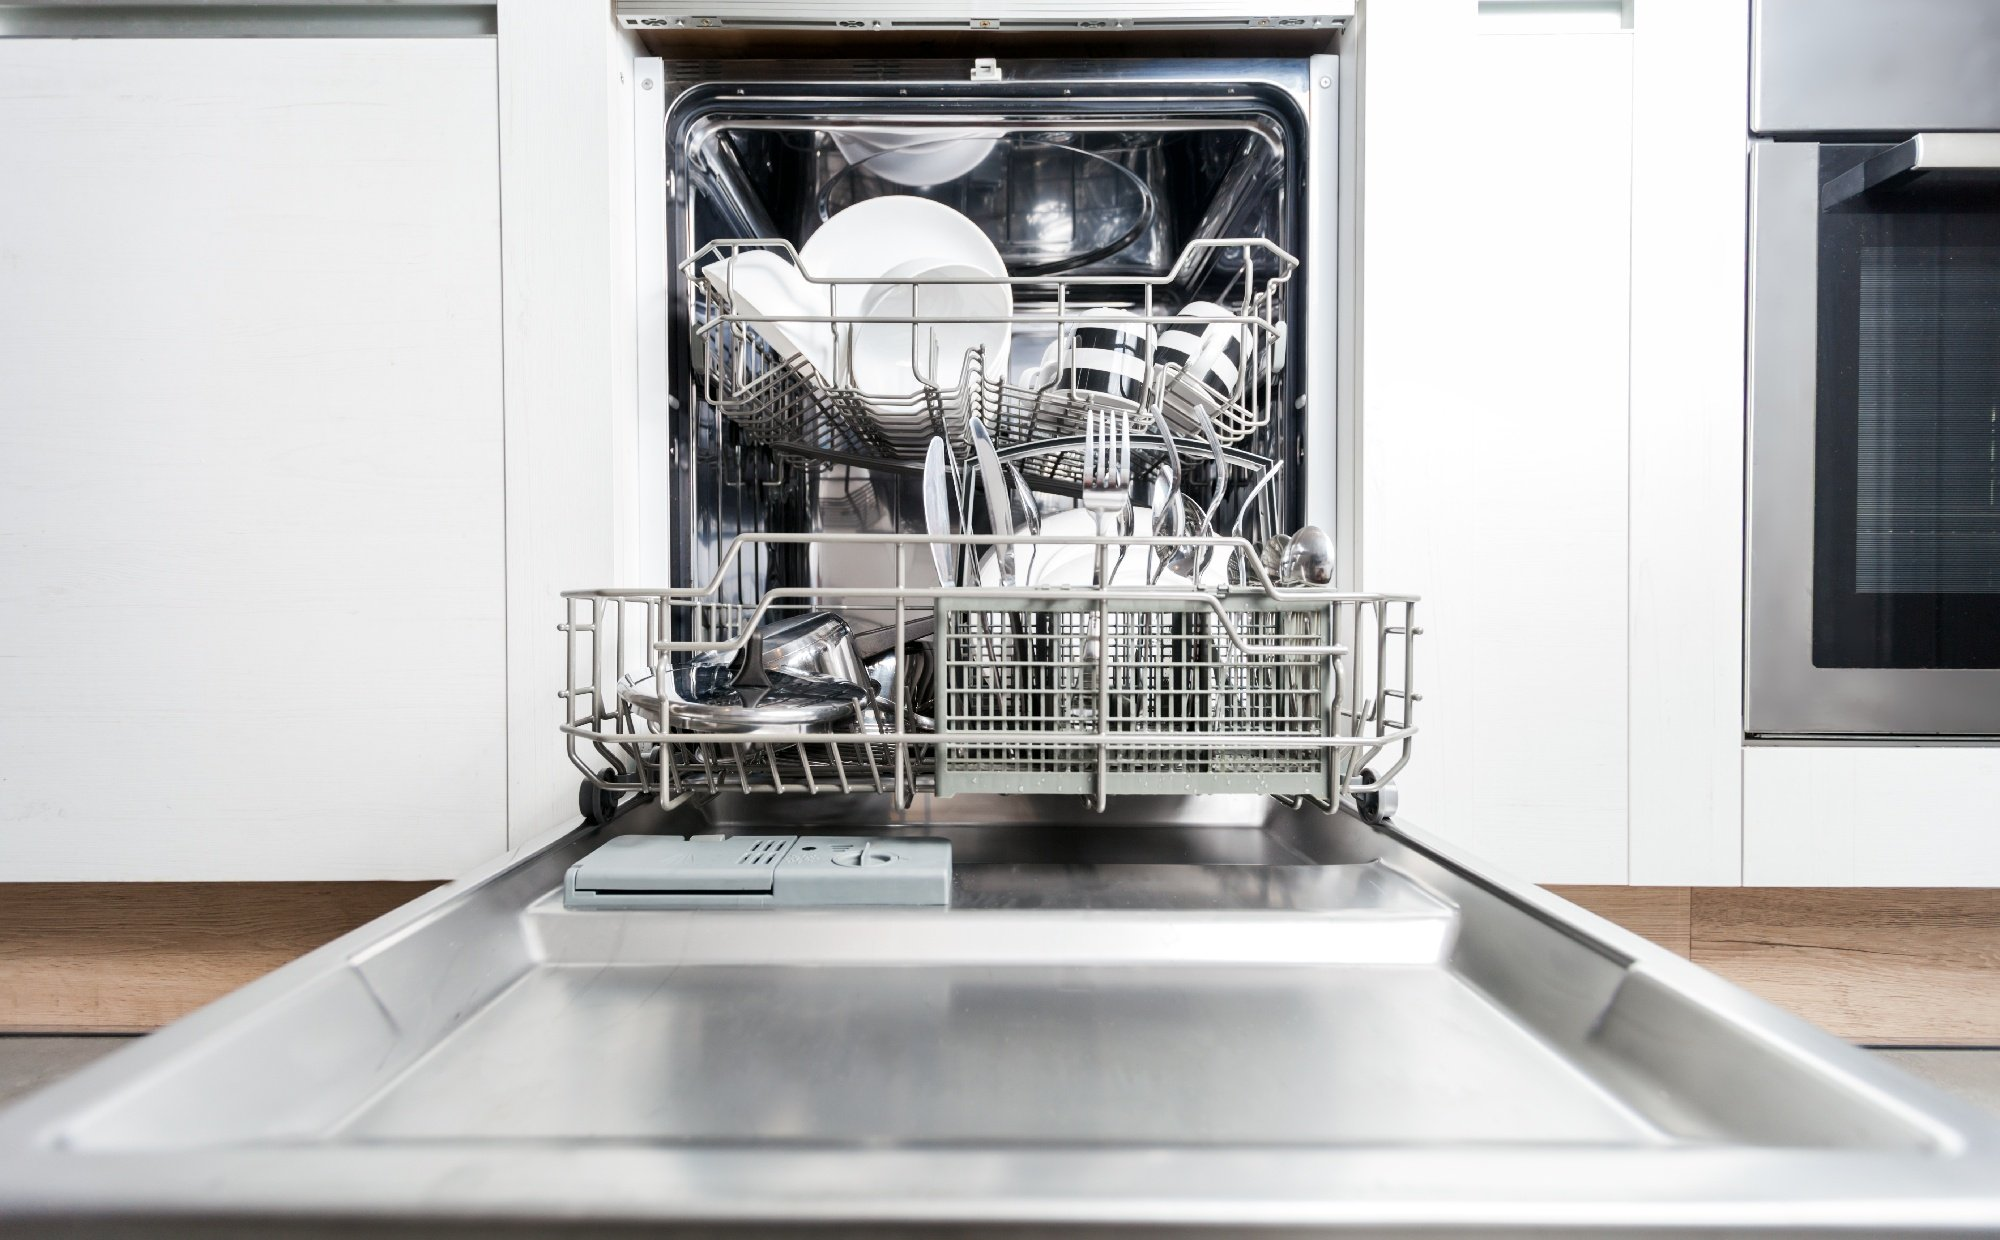 KitchenAid dishwasher repair